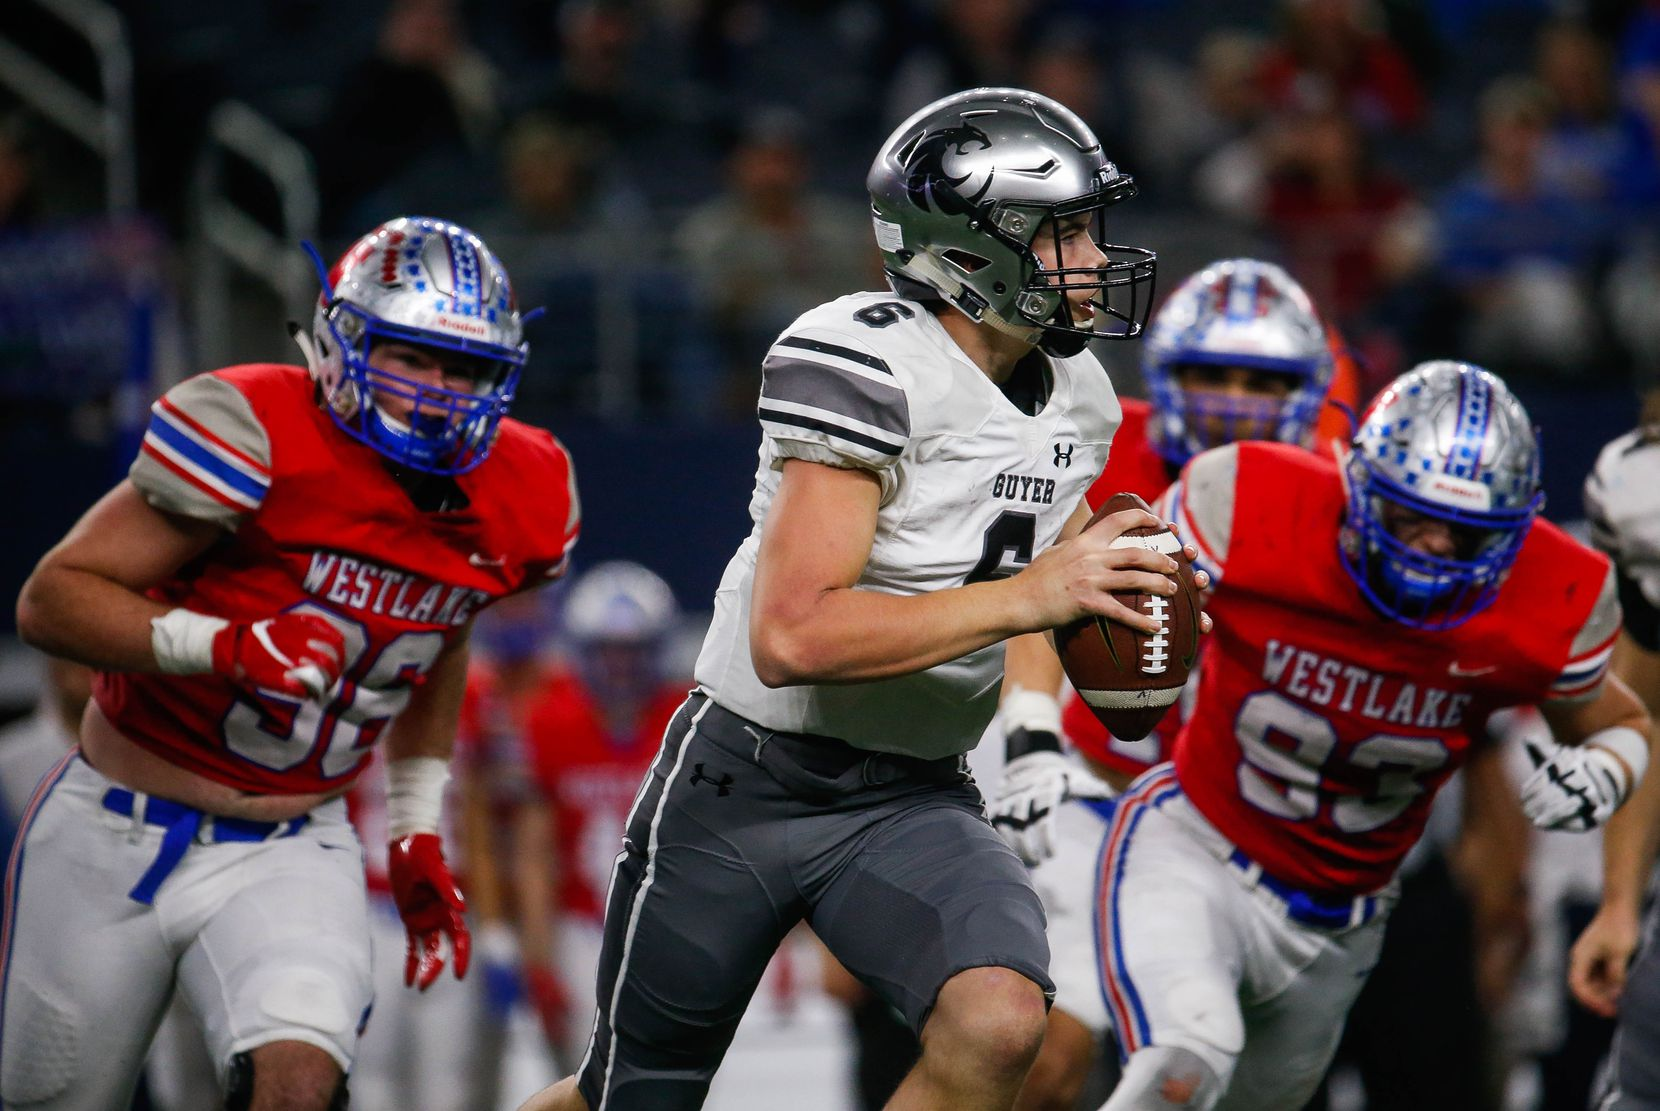 Denton Guyer's QB Jackson Arnold (6) is followed by Westlake's defense in the fourth quarter of a Class 6A Division II state championship game between Denton Guyer and Austin Westlake at the AT&T Stadium in Arlington, on Saturday, December 21, 2019. Westlake won the game 24-0.